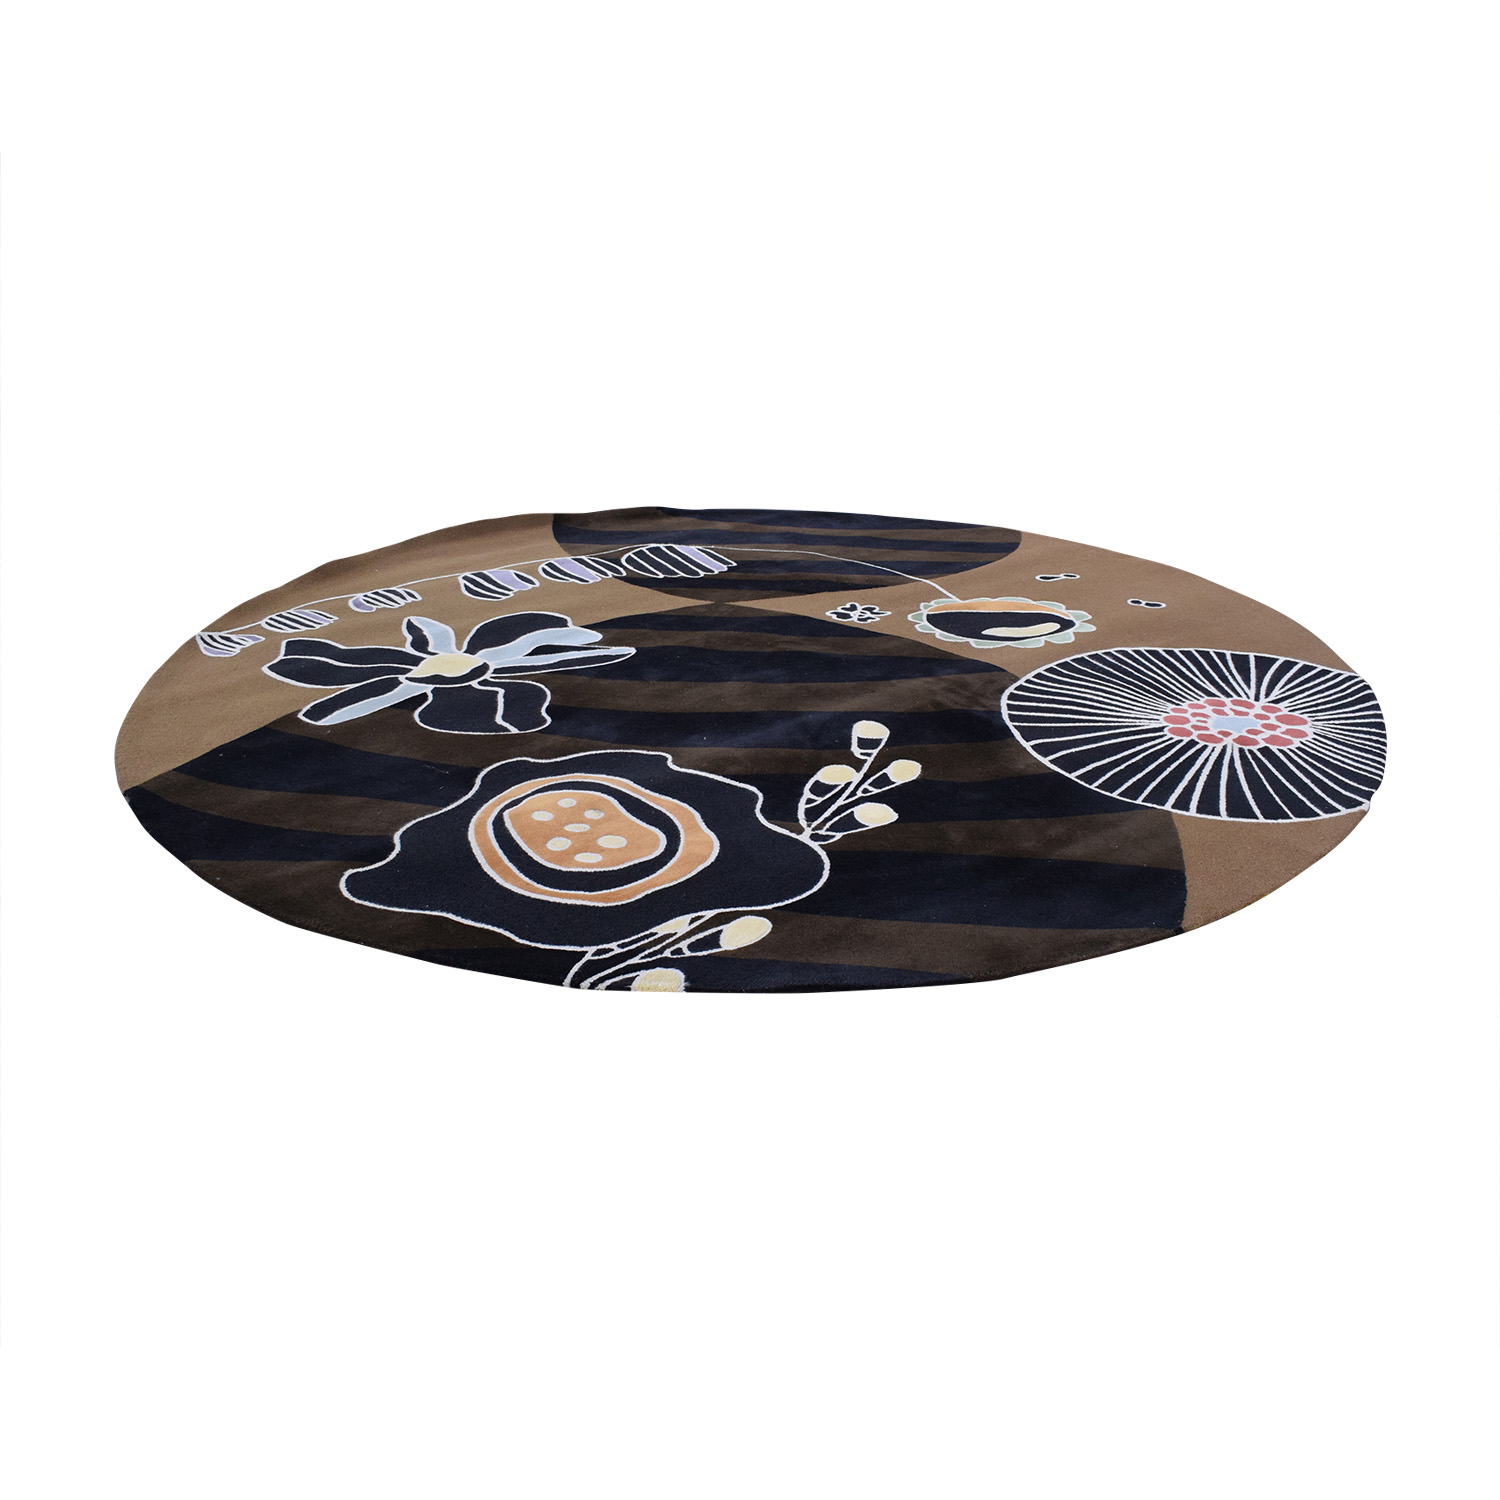 Masland Masland Rug Collection Infinity Round Rug nyc